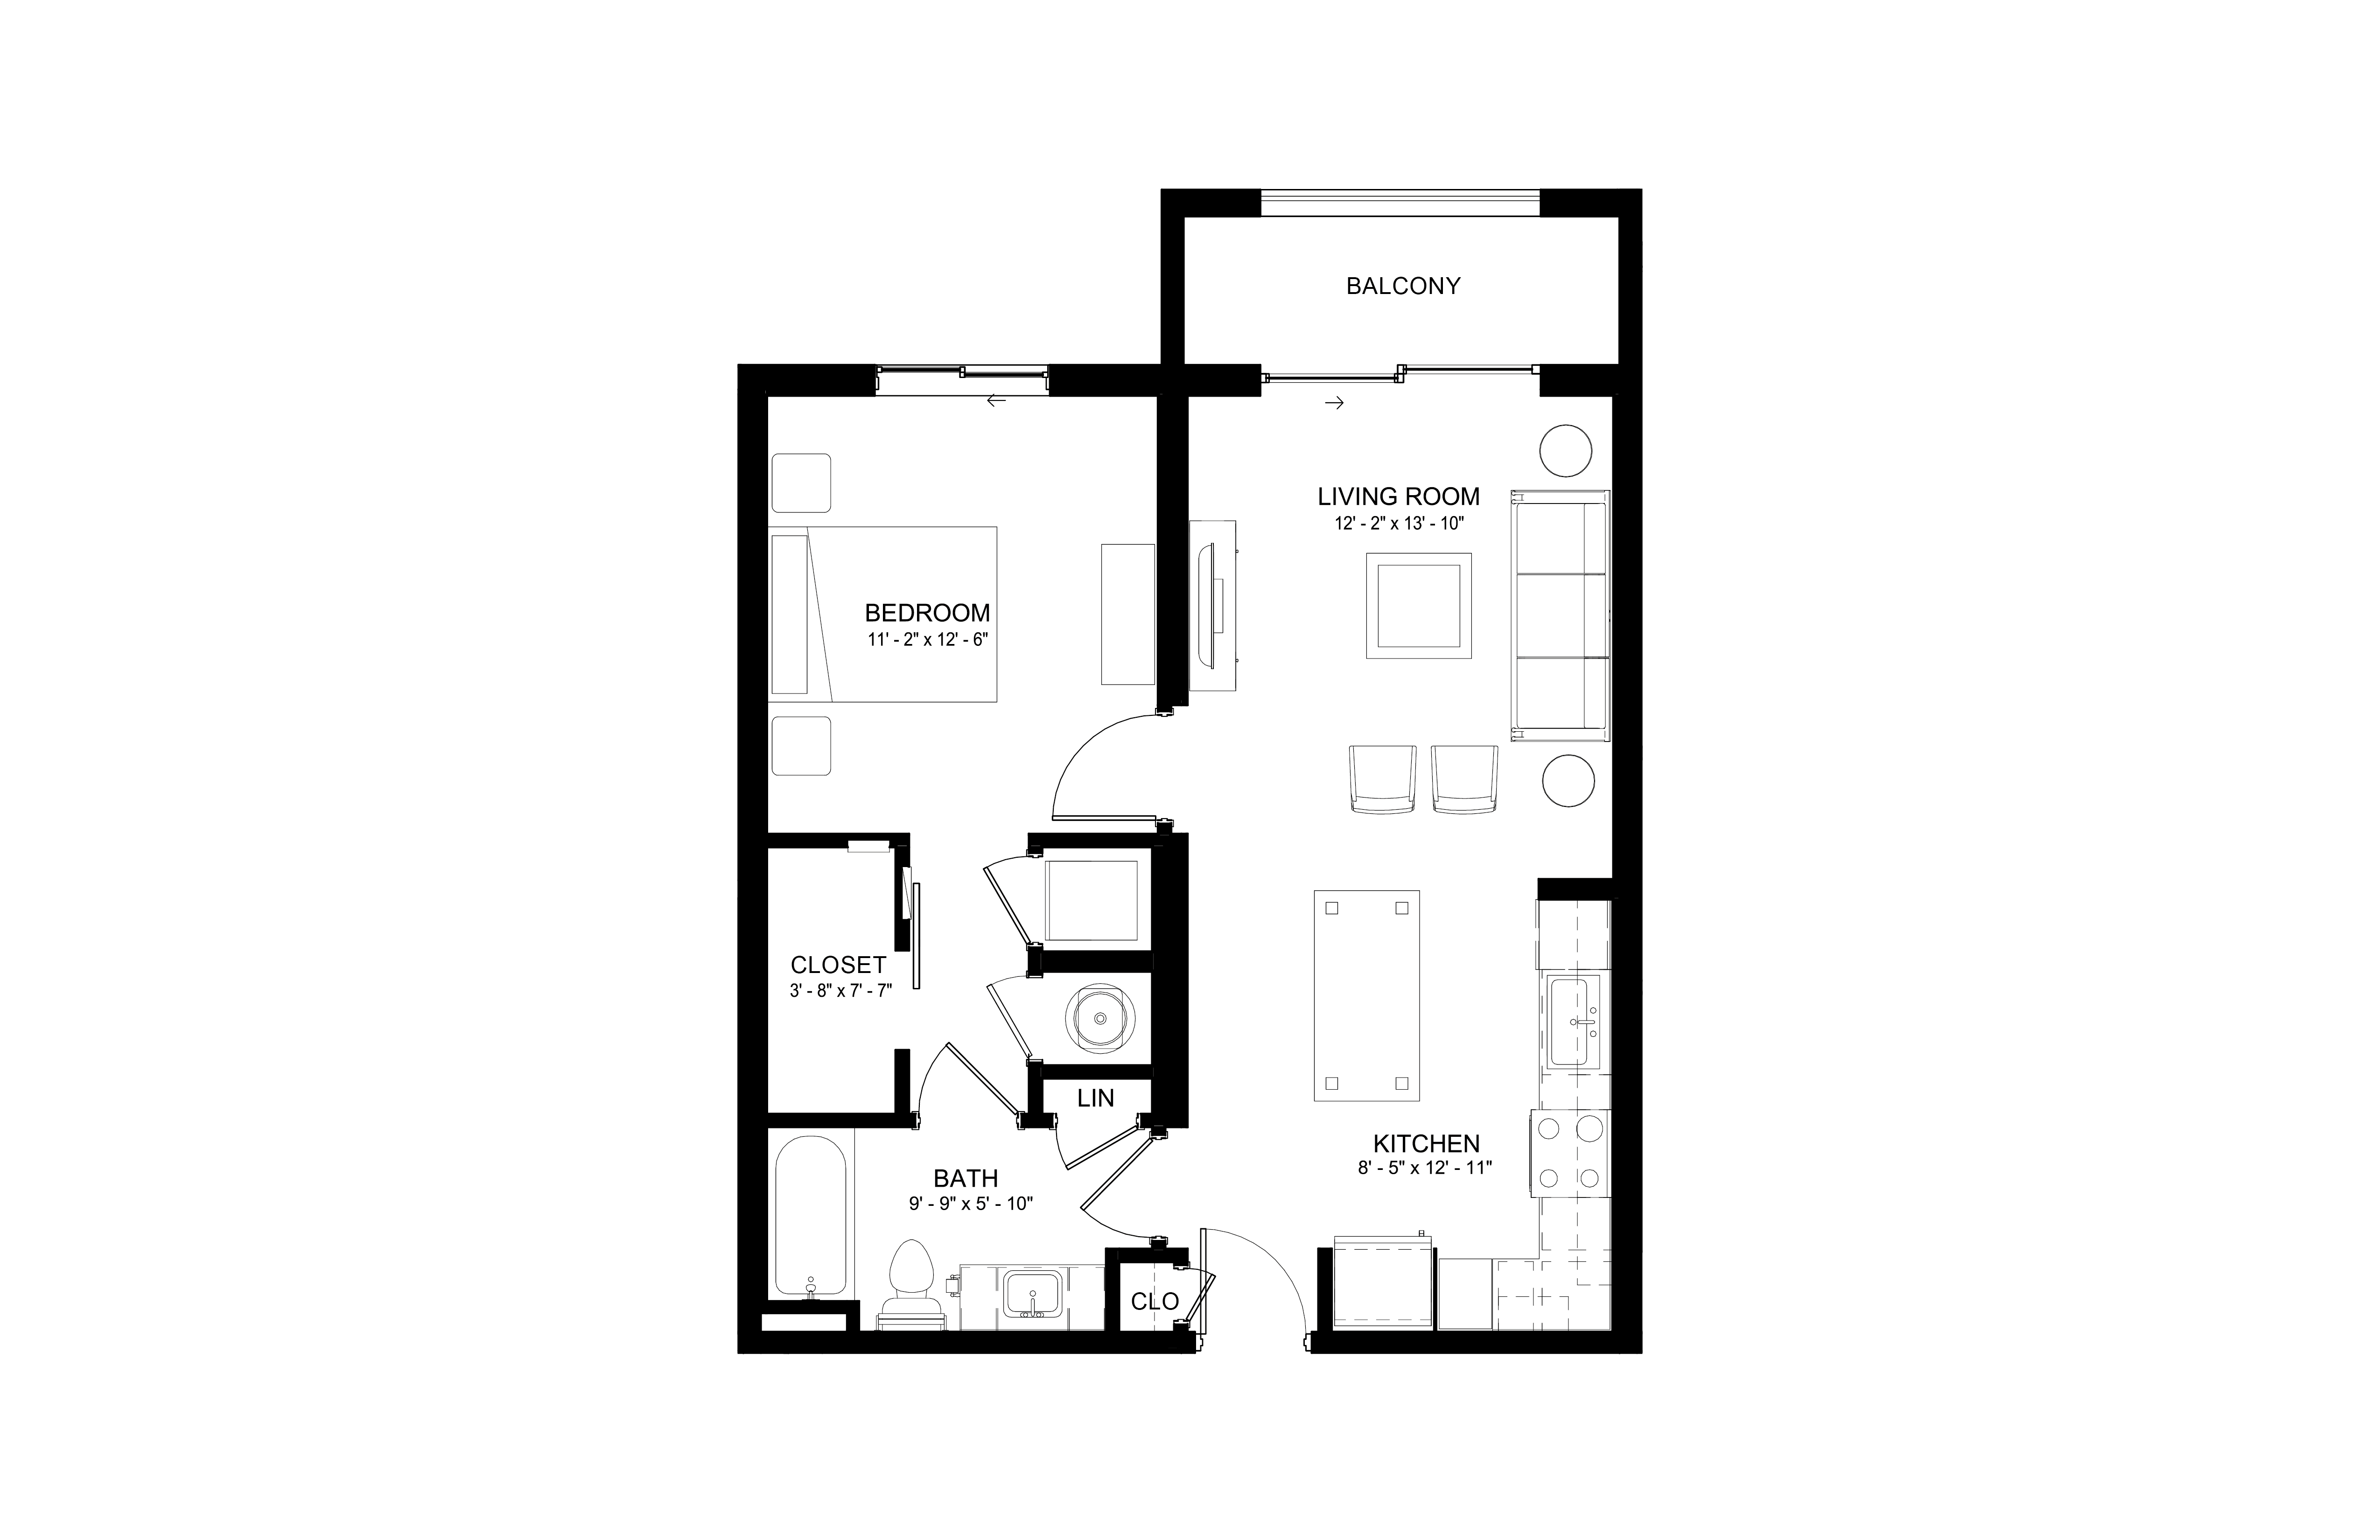 Apartment 241 floorplan